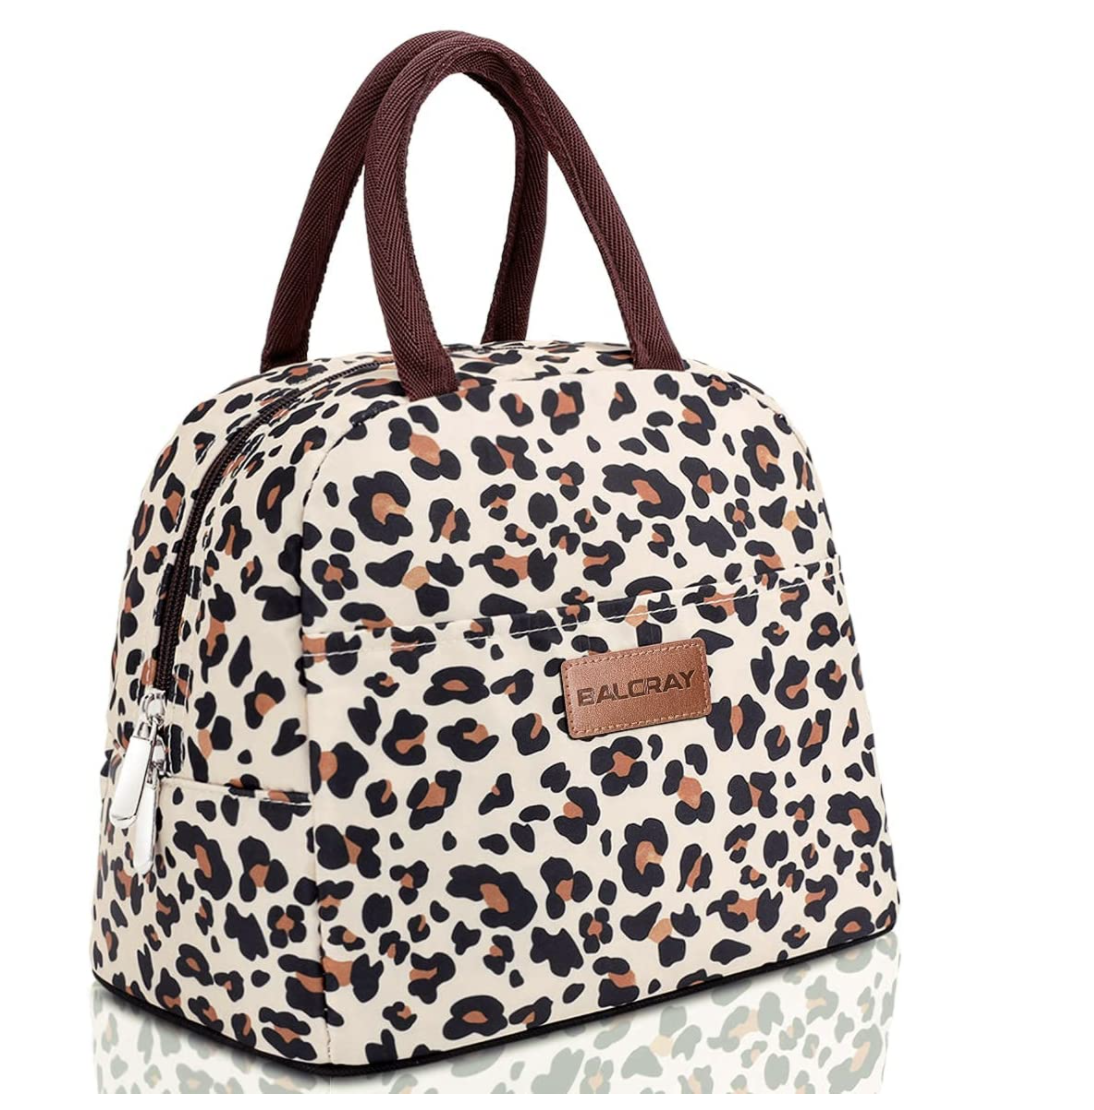 gifts-for-women-in-their-30s-lunch-tote